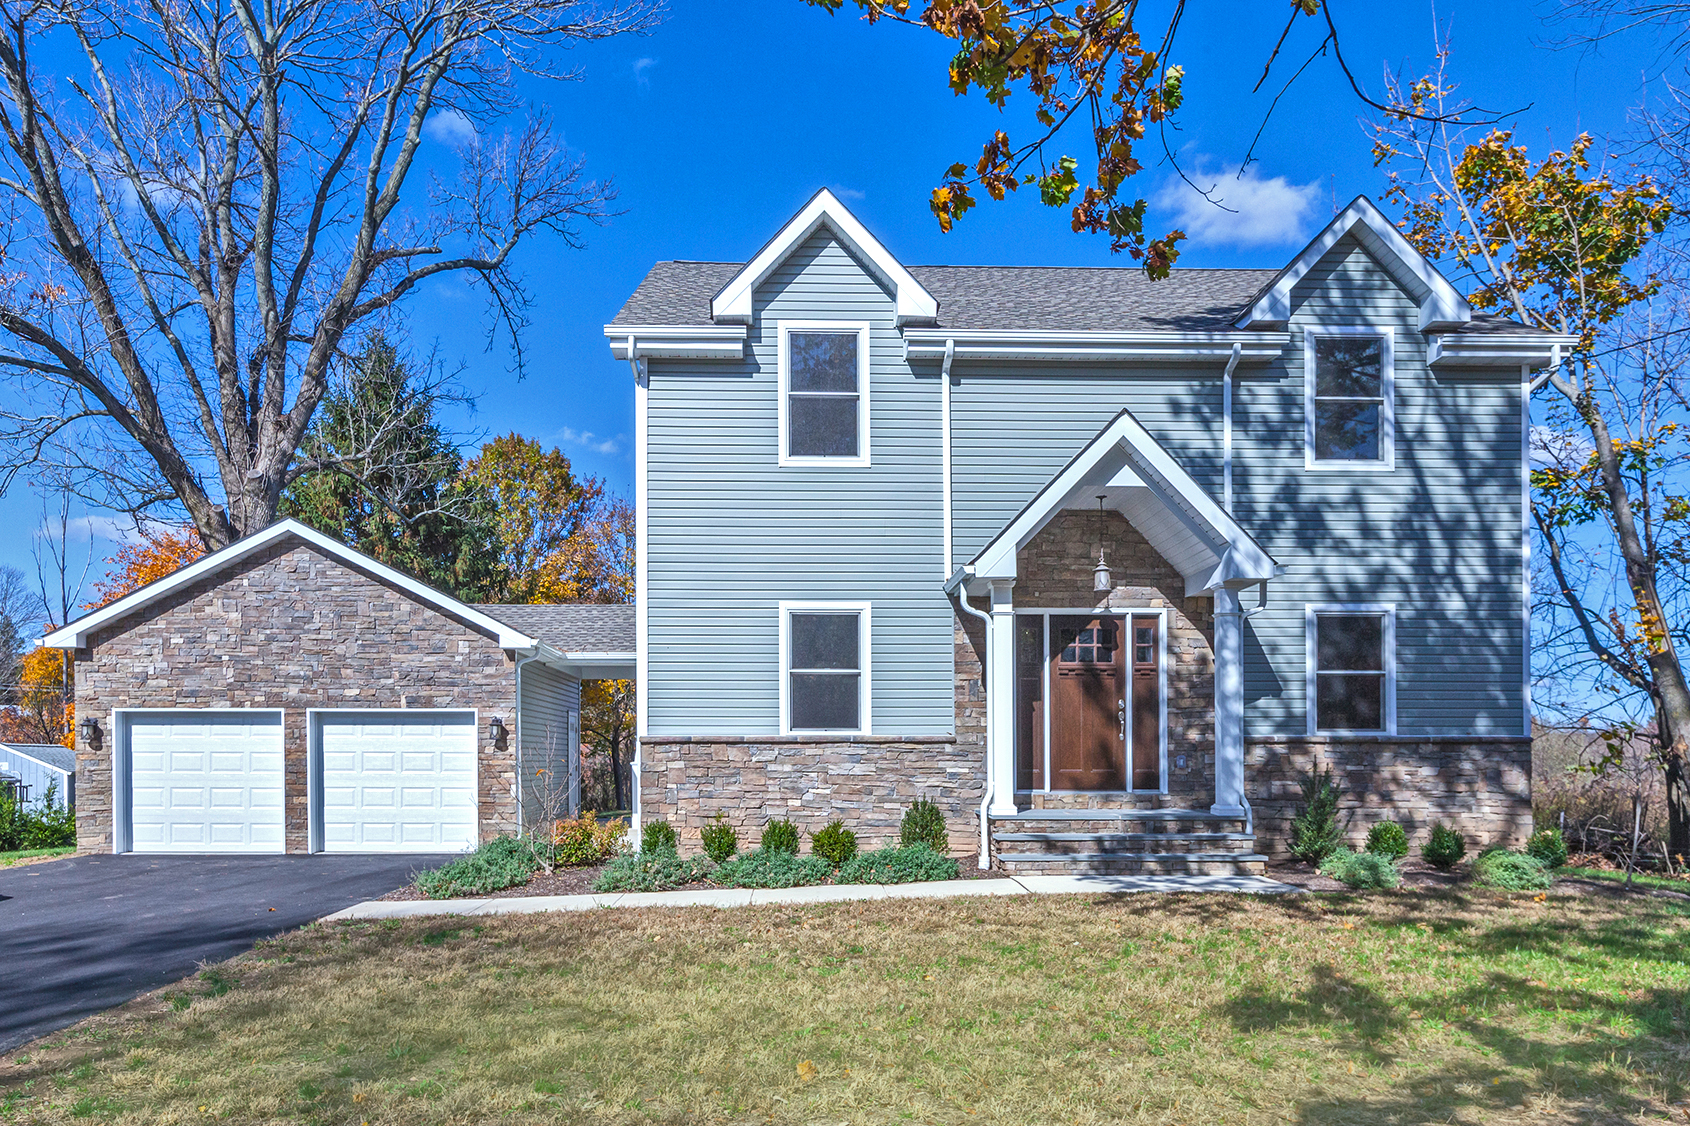 Property For Sale at Stunning New Construction Welcomes with Open Arms - Hopewell Township